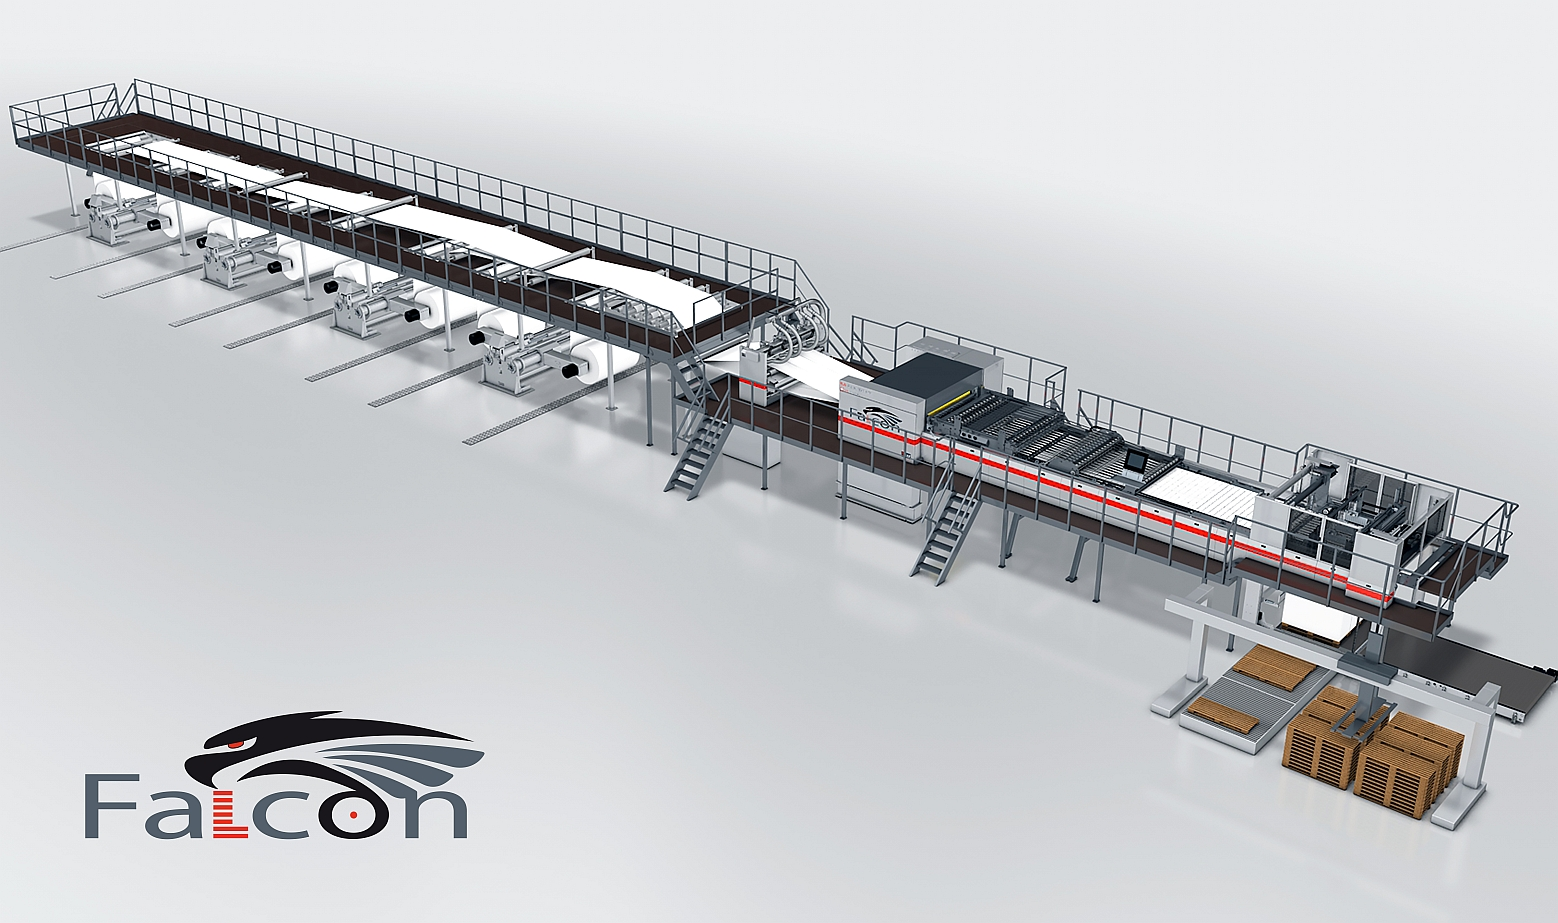 Highlight: New Falcon Folio Sheeter for Paper Mills